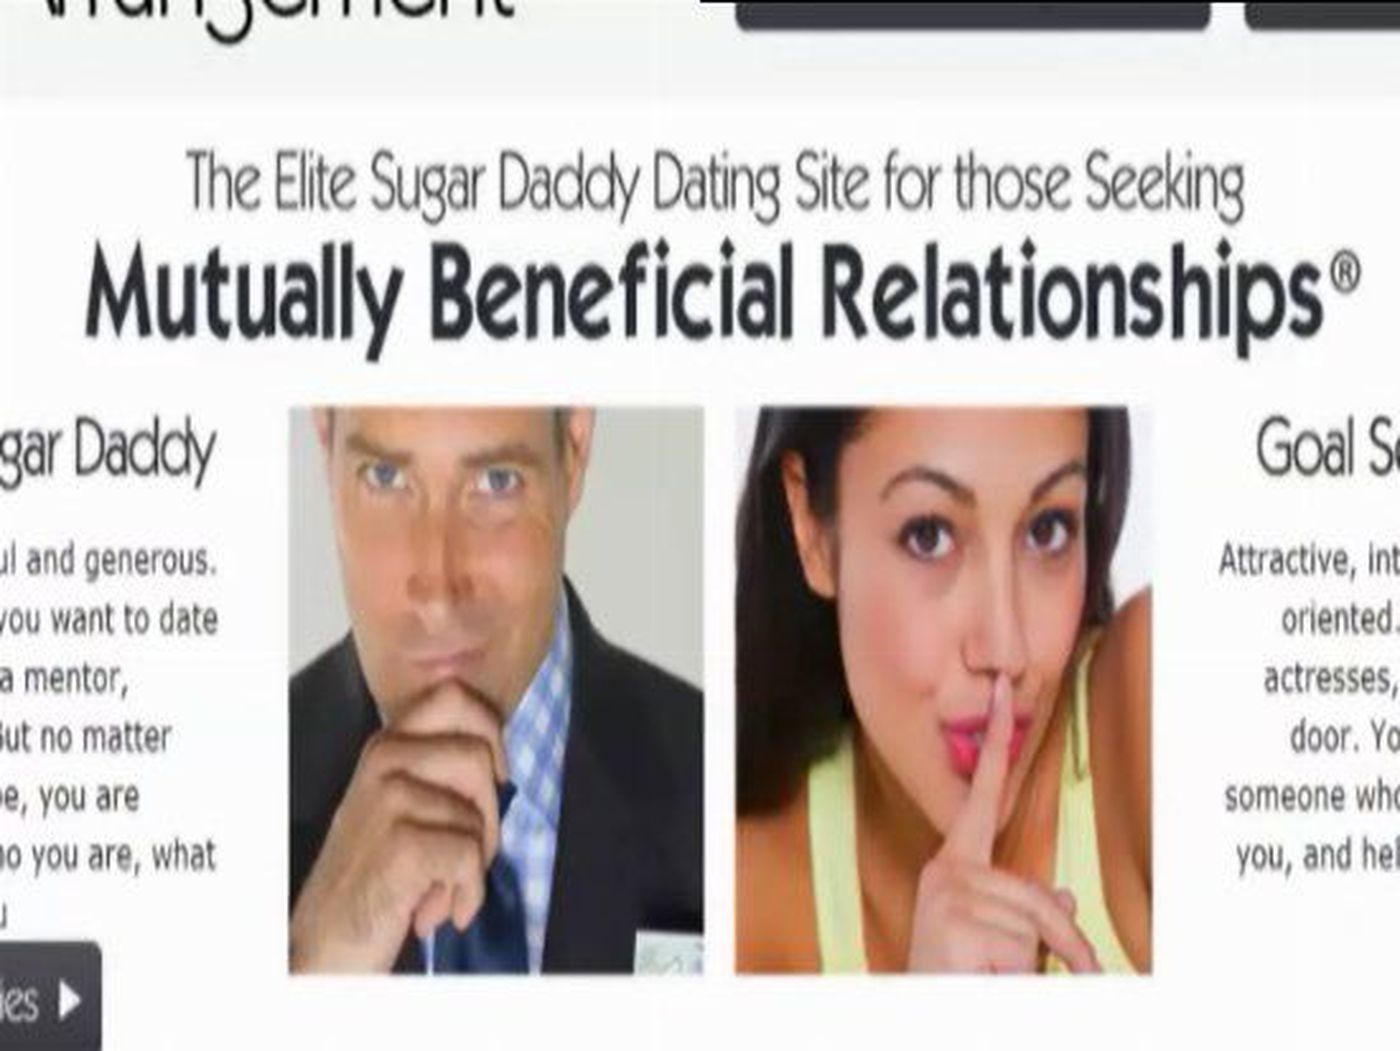 vagina-dating-sites-for-sugar-daddy